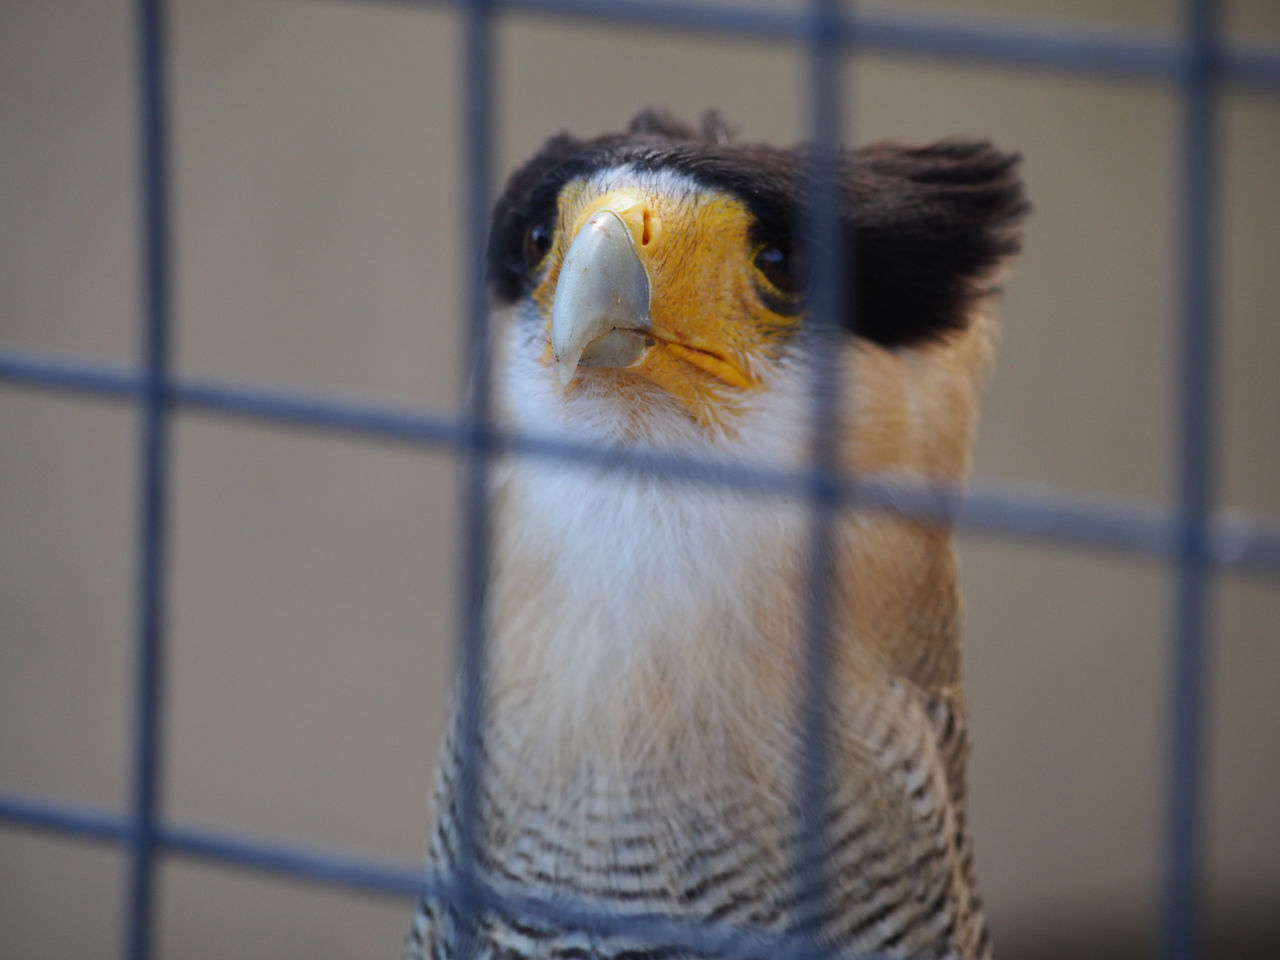 Beak Bird In Captivity CaraCara Helmsley Loud Call National Centre For Birds Of Prey Nature